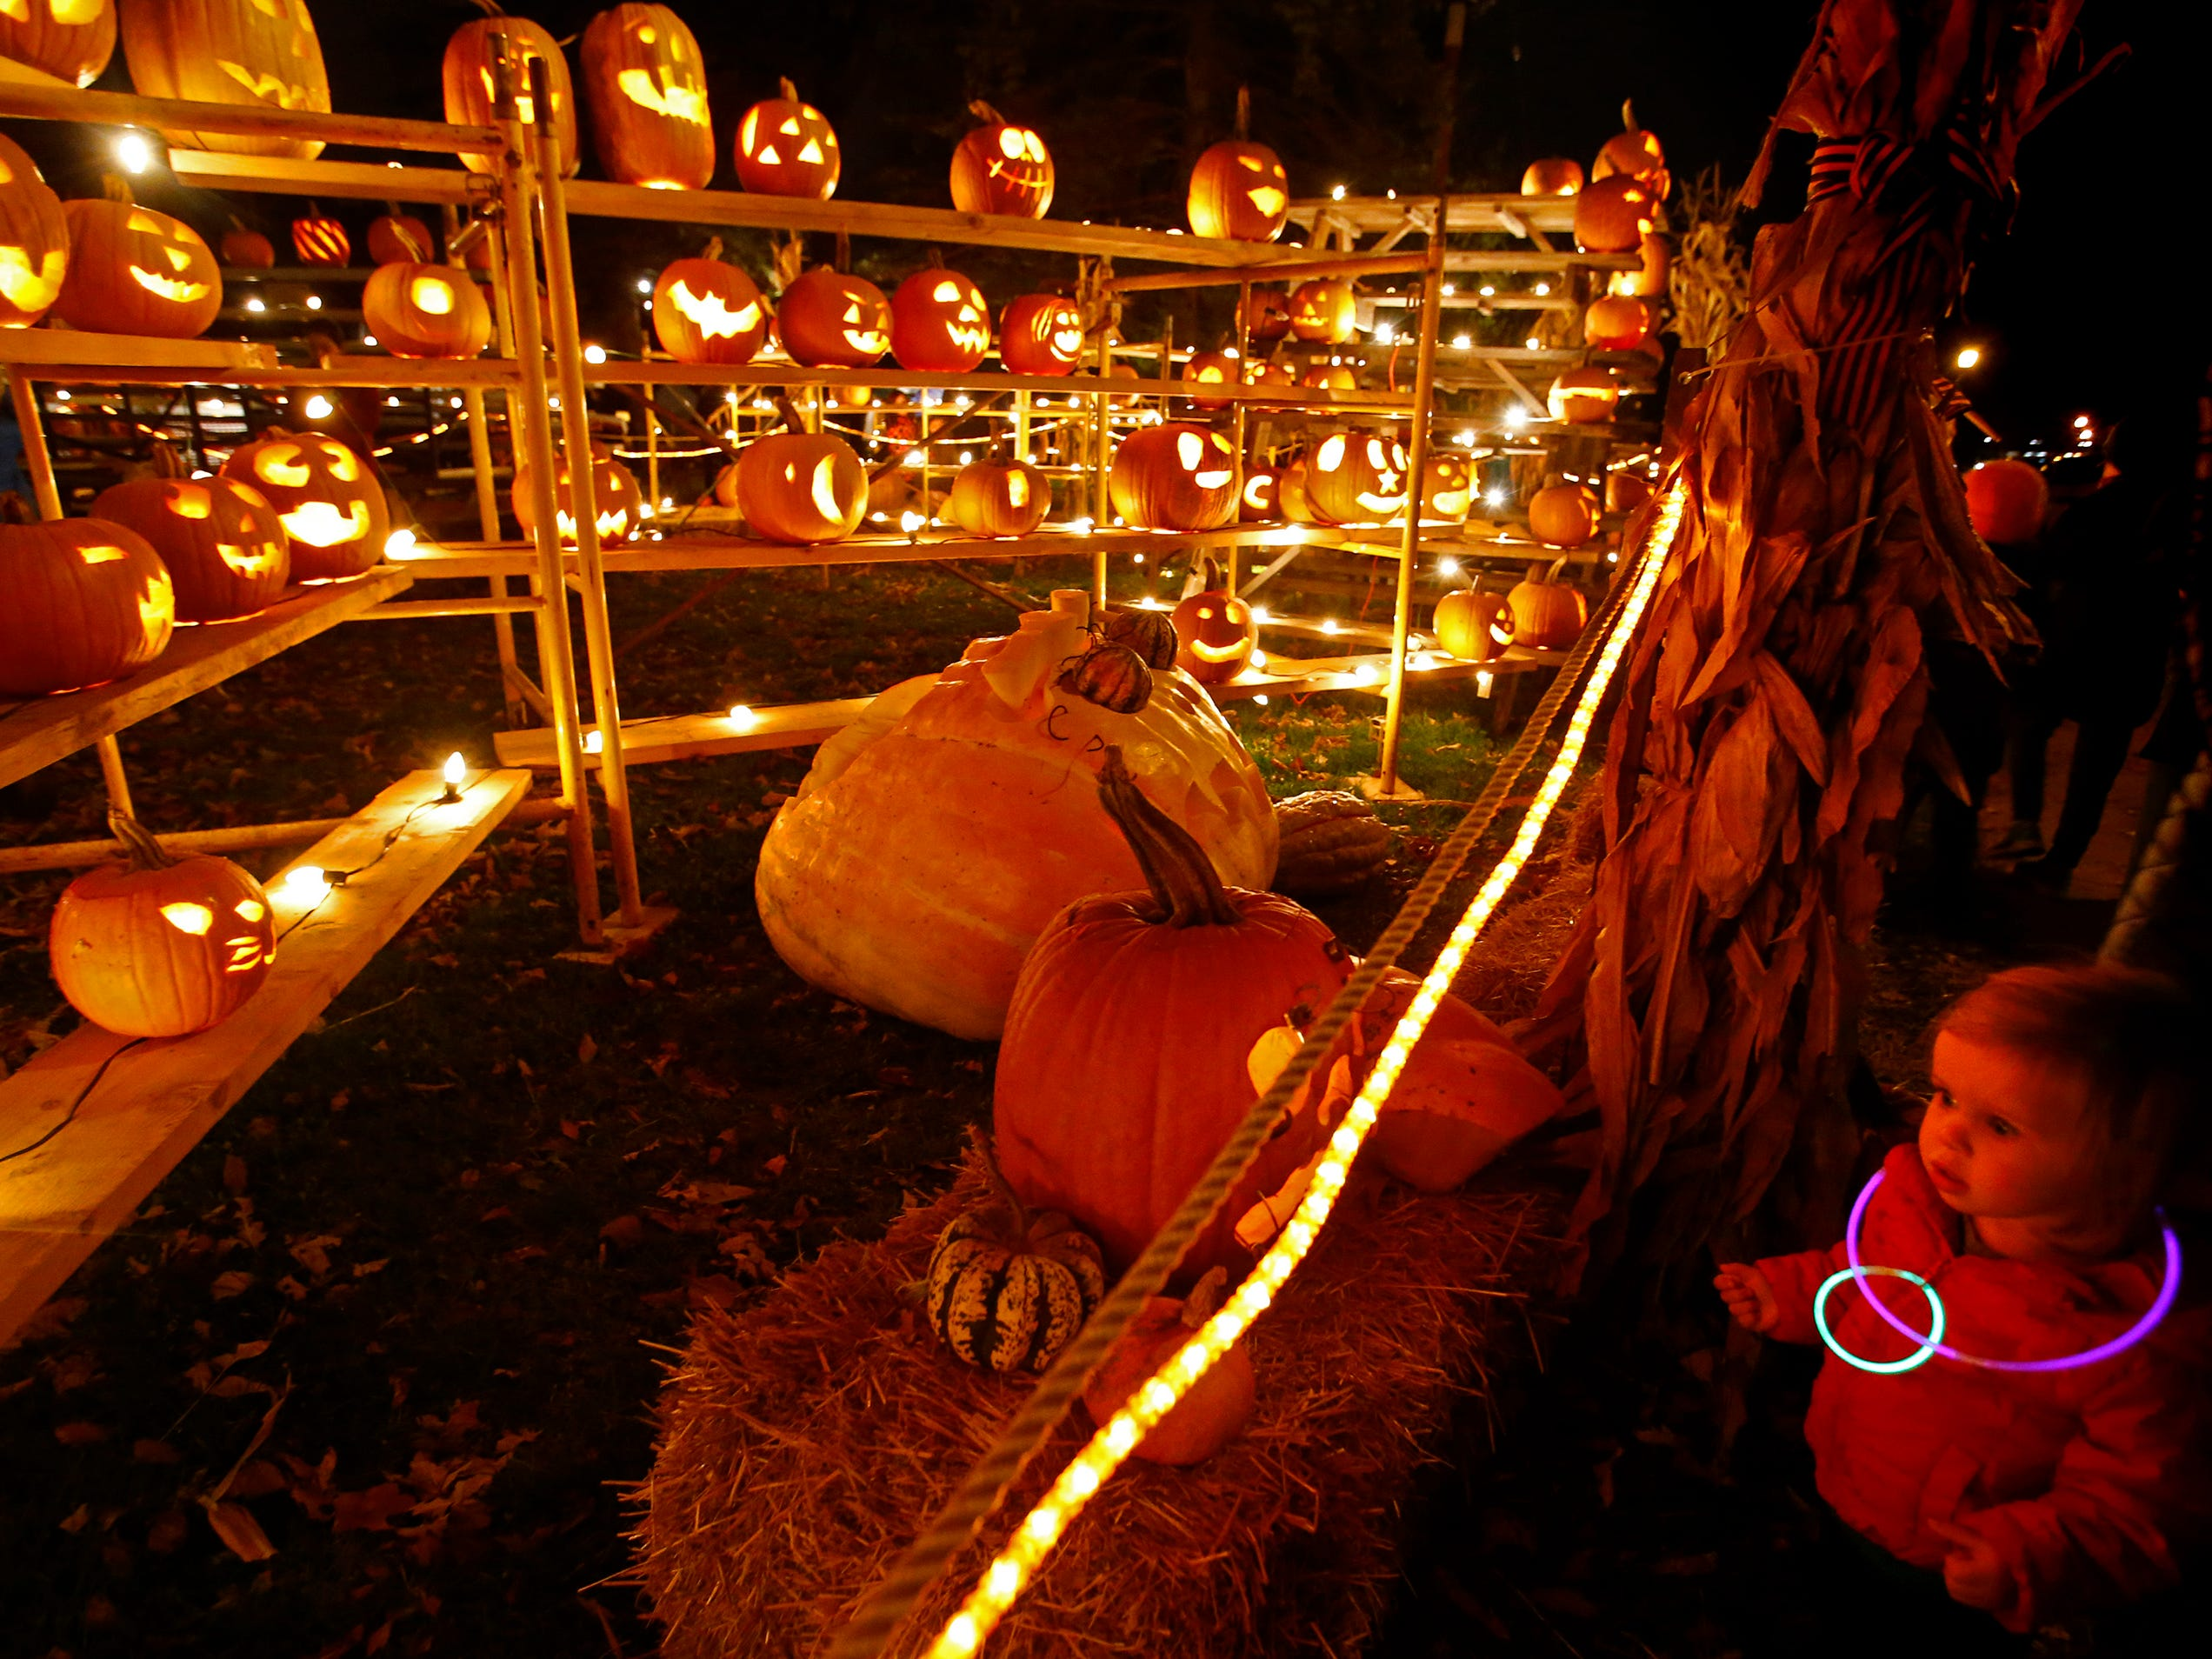 Maggie Ingram of Whitefish Bay views the hundreds of creations at the 32nd annual Whitefish Bay Great Pumpkin Festival at Old Schoolhouse Park, hosted by the Whitefish Bay Civic Foundation, on Oct. 25. The festival runs from 6 to 9 p.m. Wednesday, Oct. 24, through Sunday, Oct. 28.